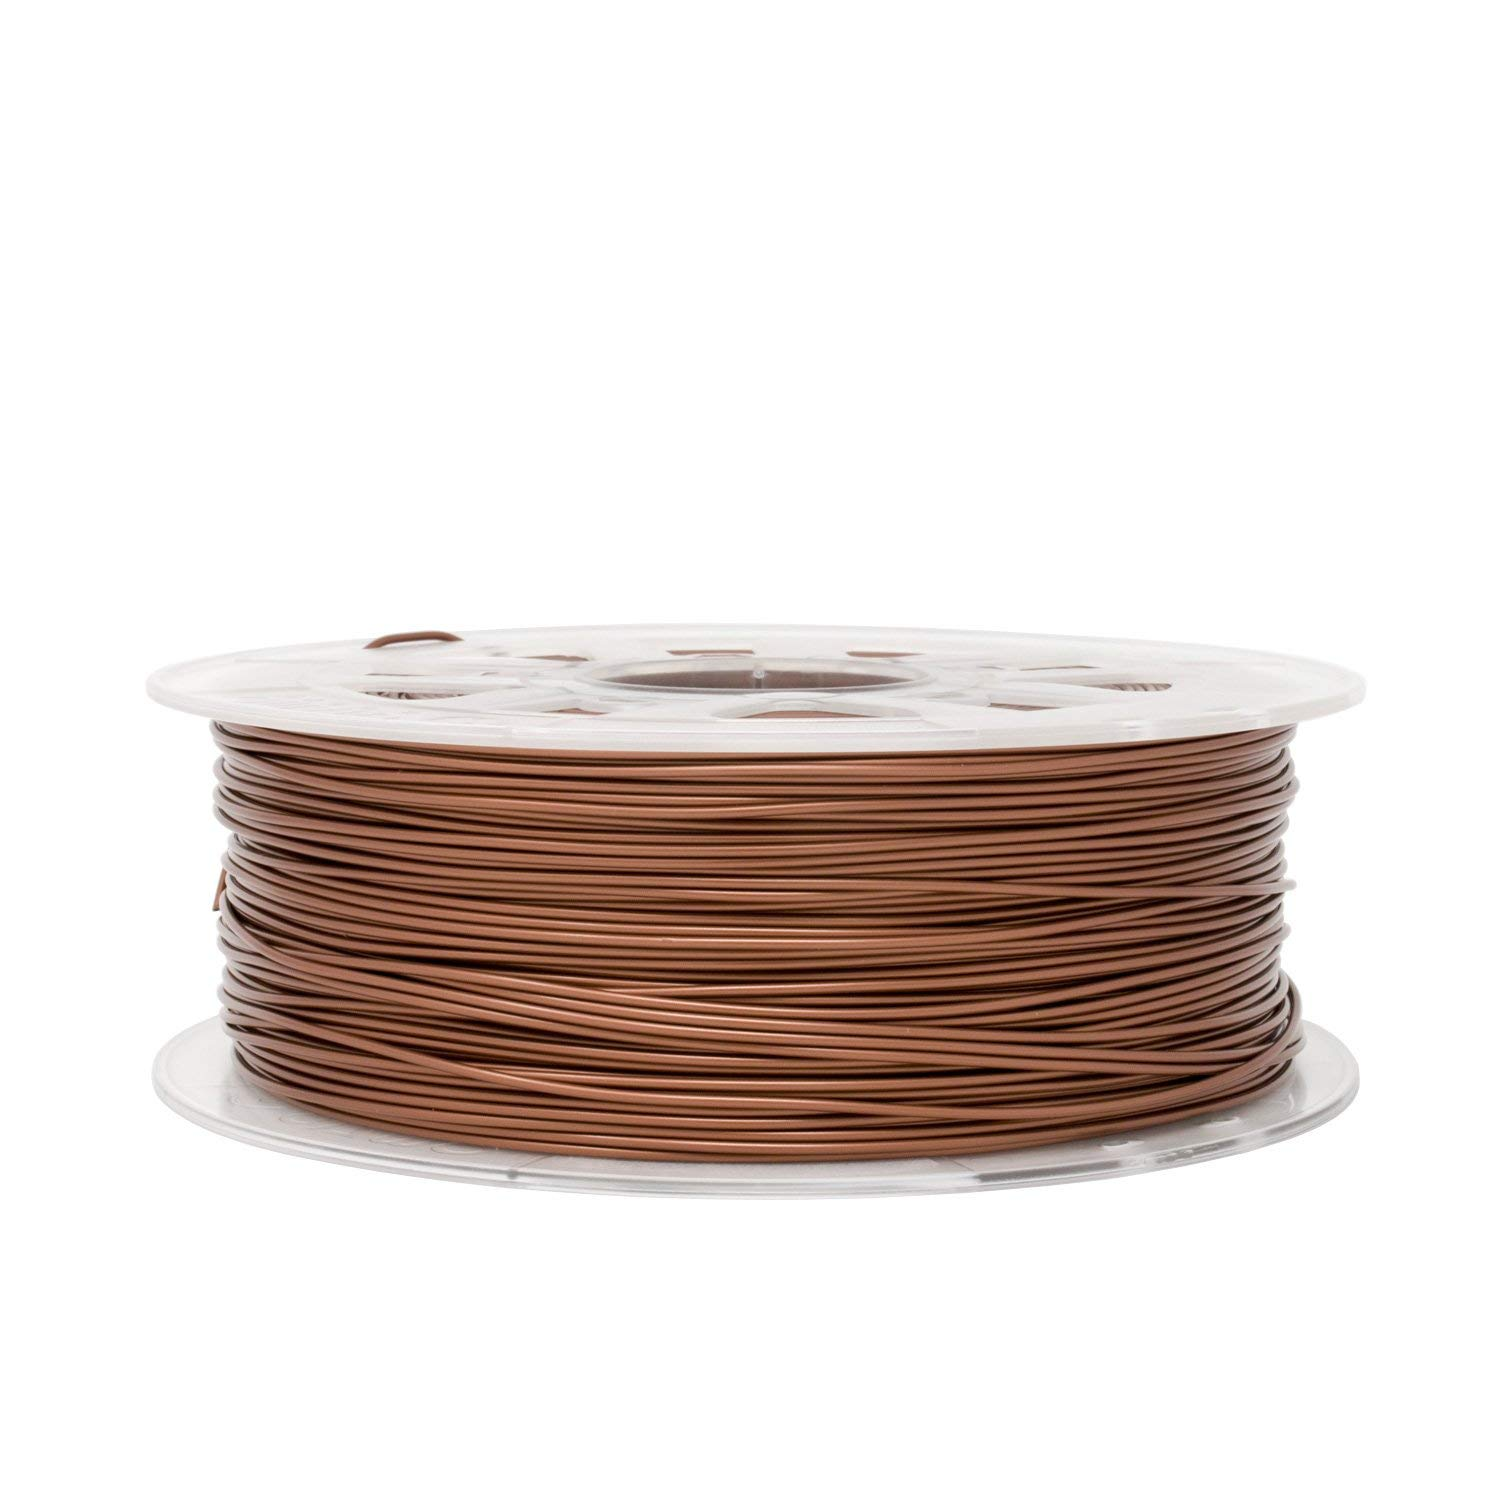 nhua-in-3d-pla-mau-dong-copper-color-1-75mm-1kg